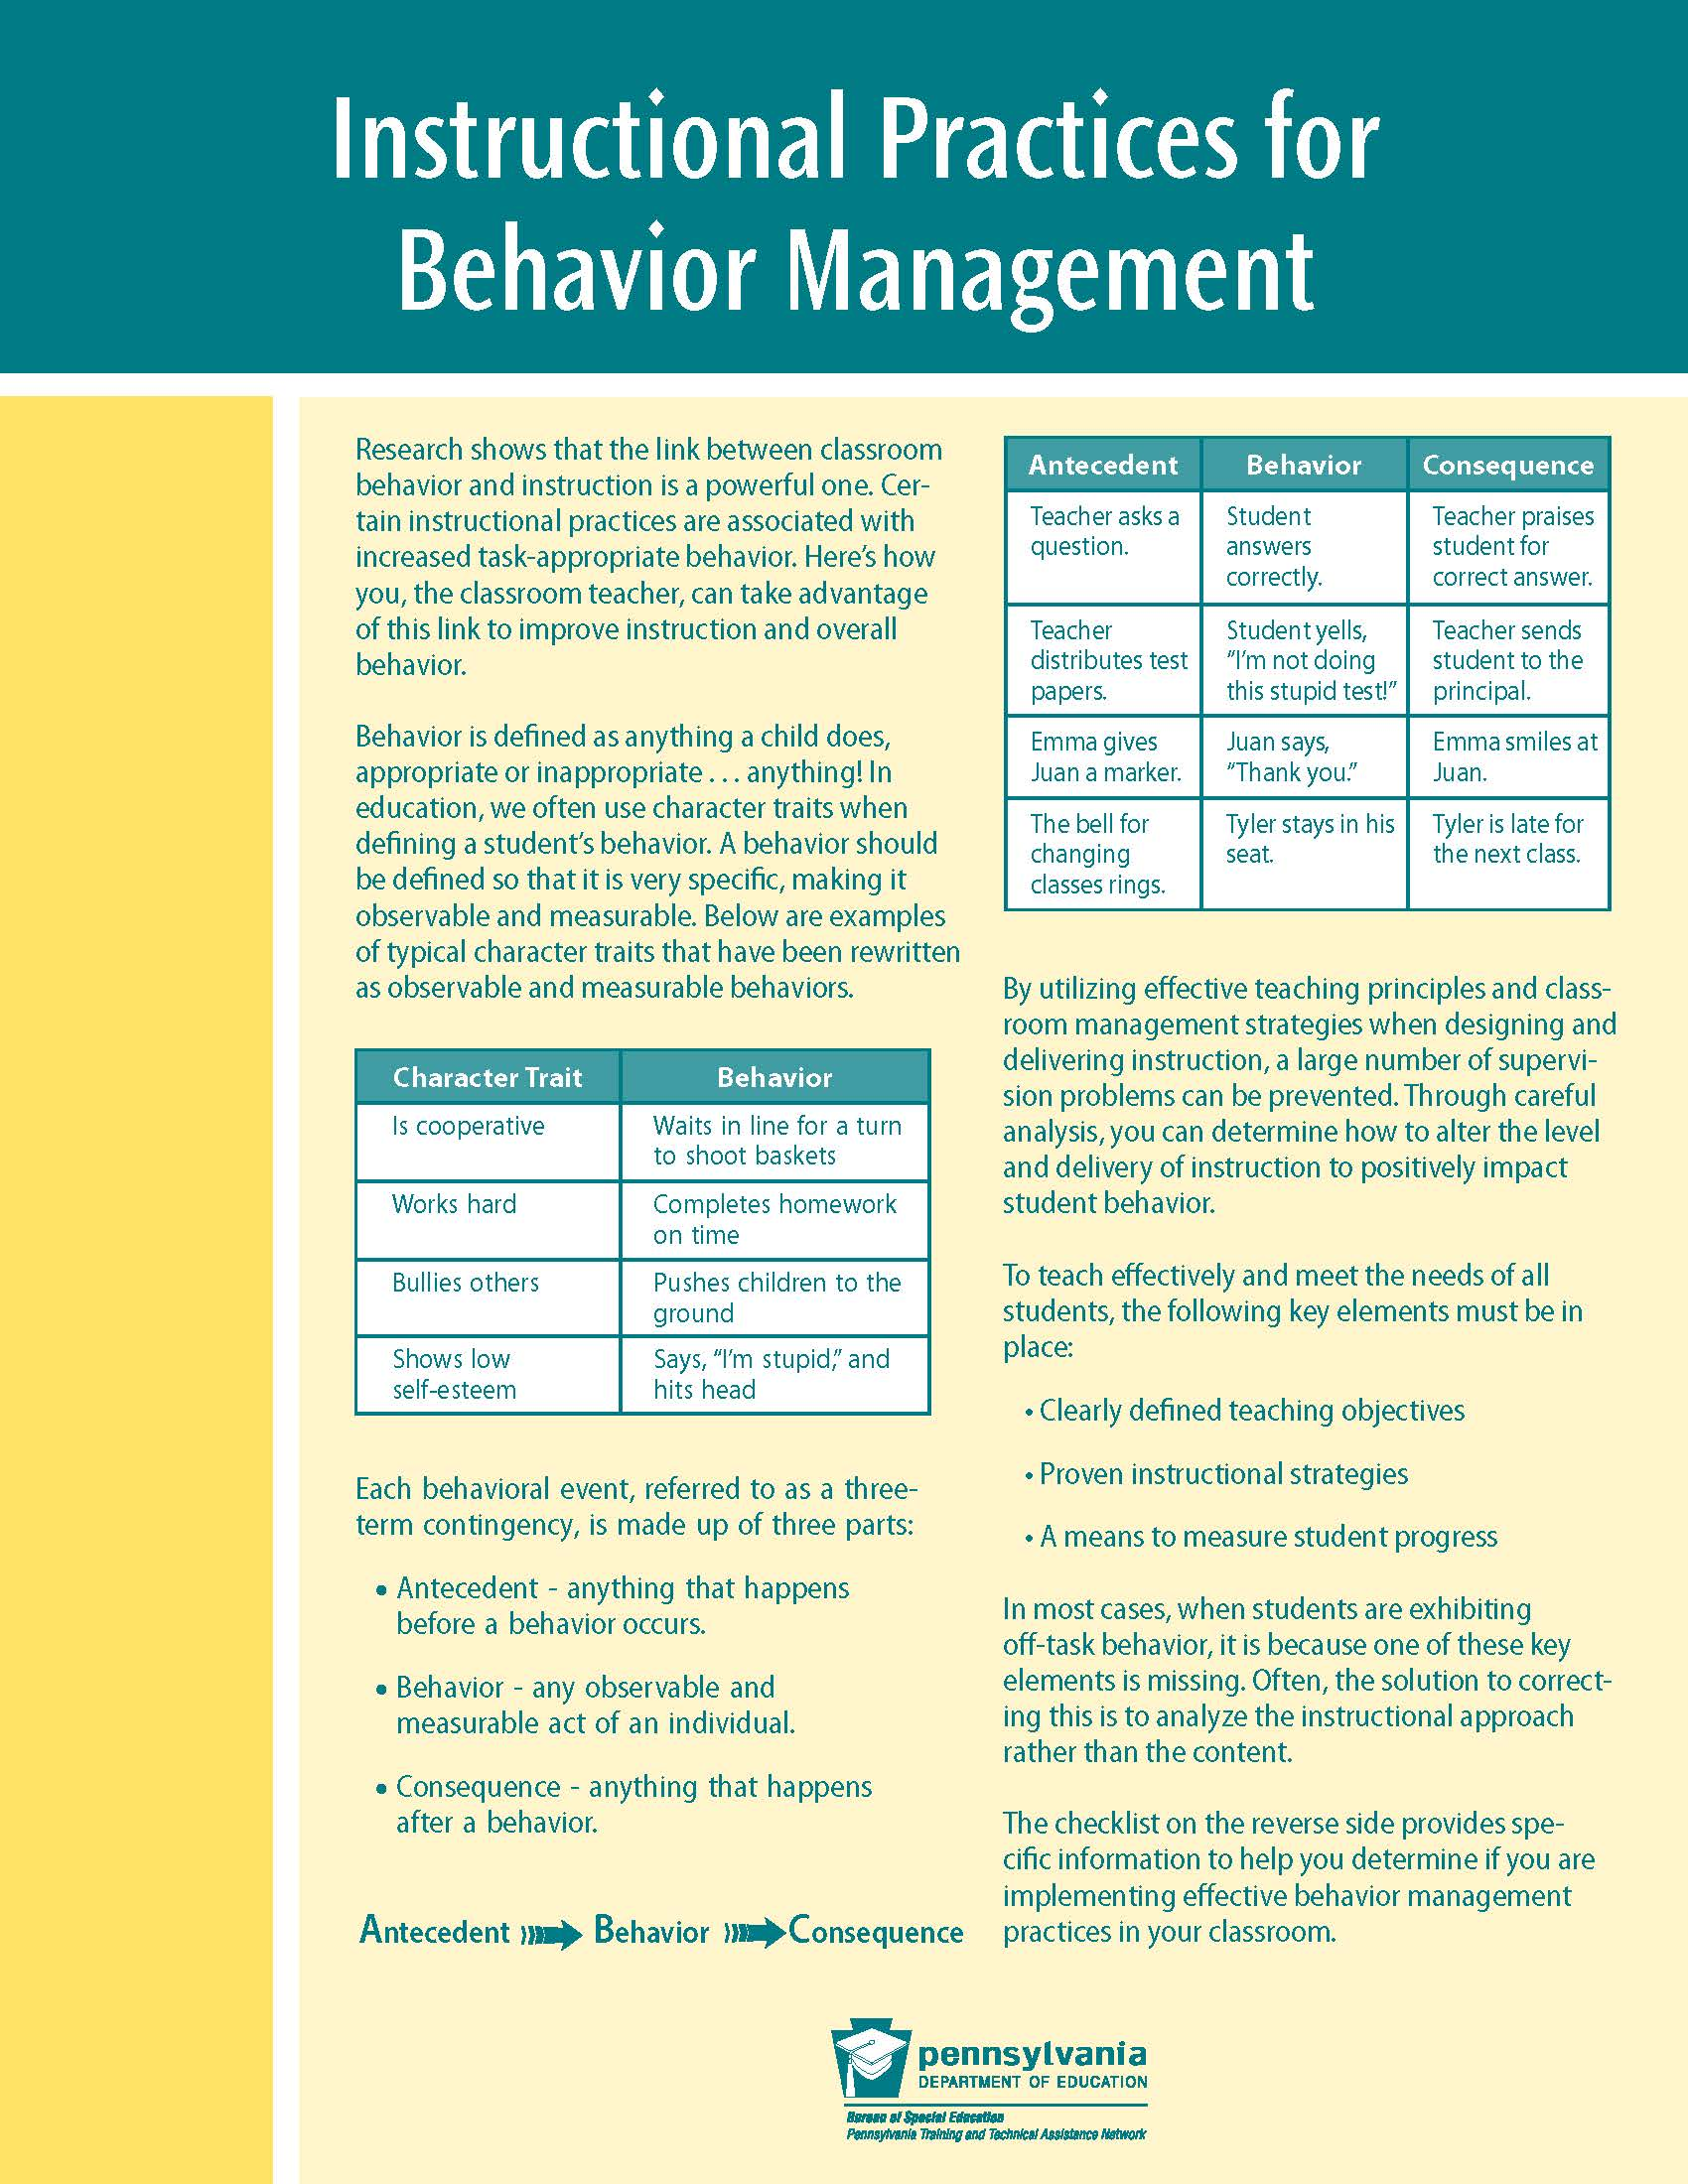 Instructional Practices For Behavior Management Cover Image